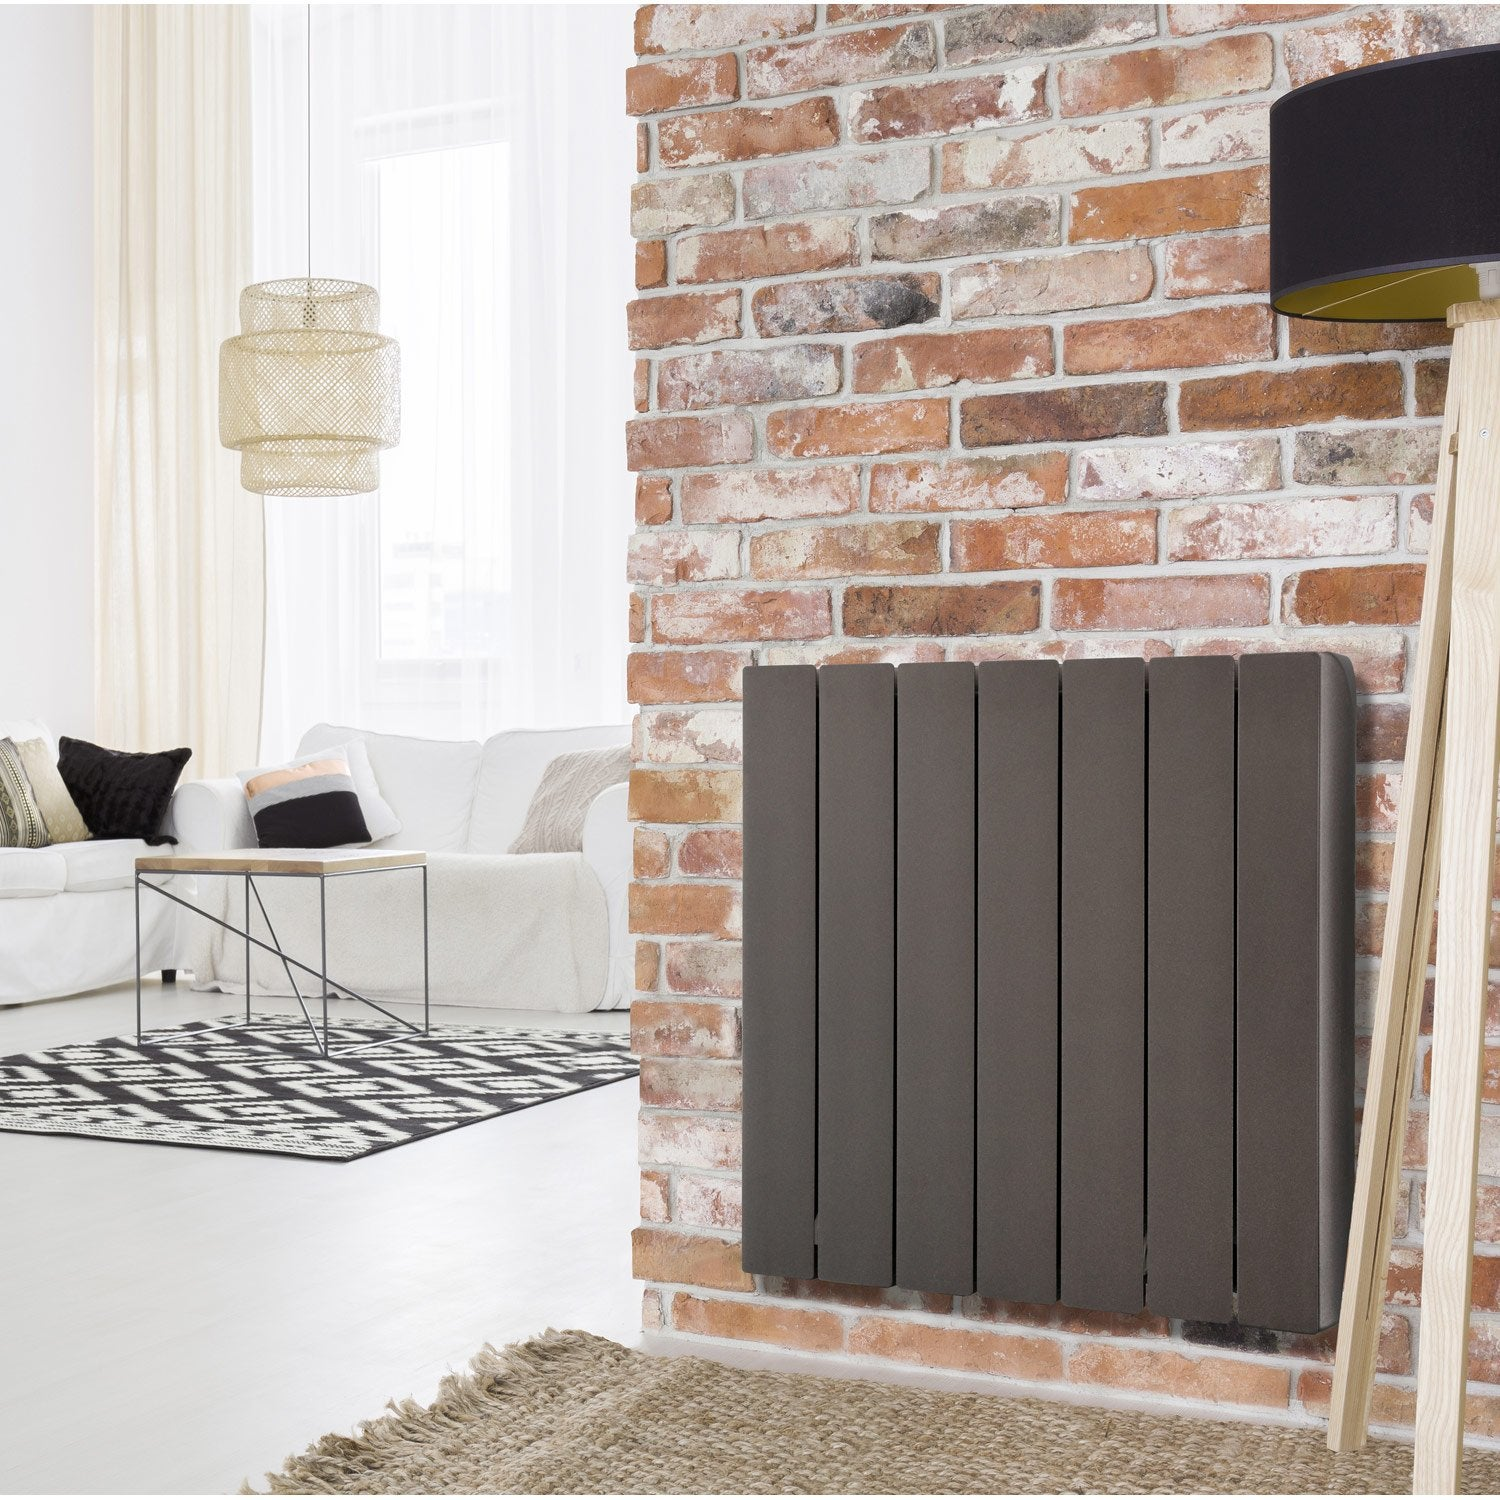 radiateur inertie fluide pas cher latest radiateur lectrique inertie fluide celcia w with. Black Bedroom Furniture Sets. Home Design Ideas